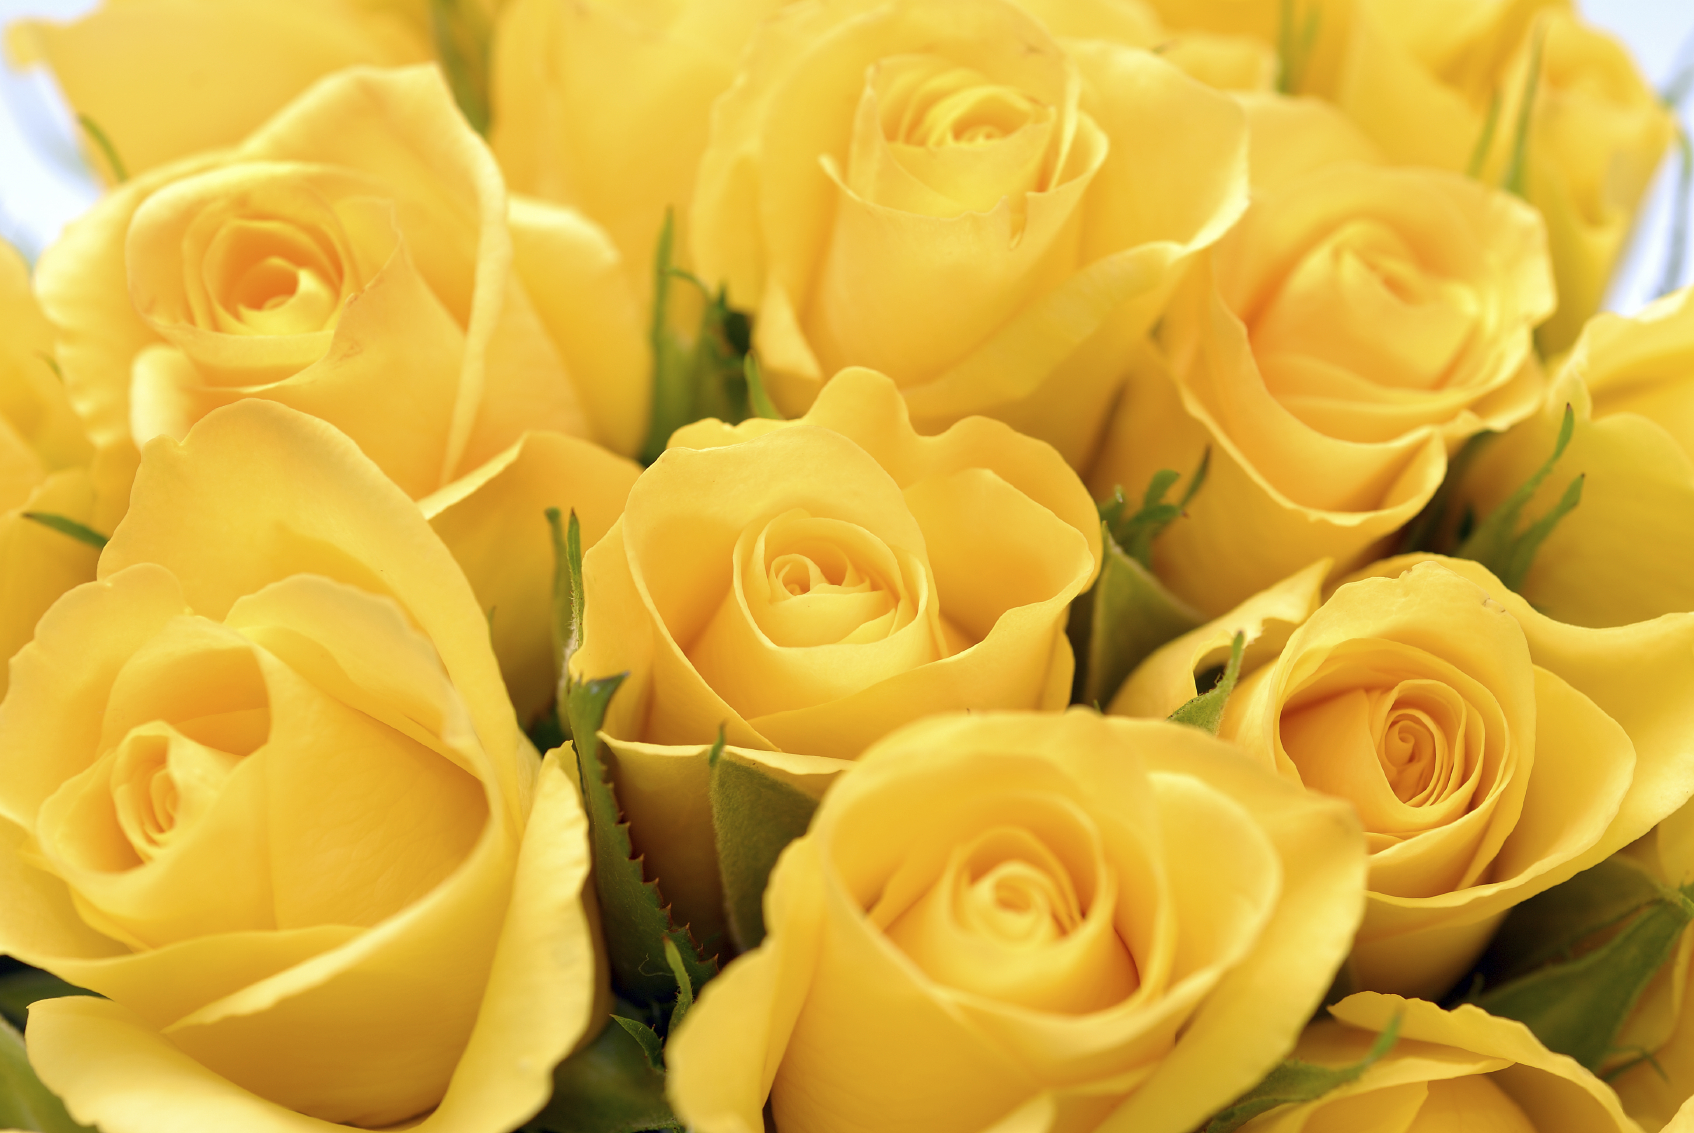 wallpaper of yellow roses - photo #23